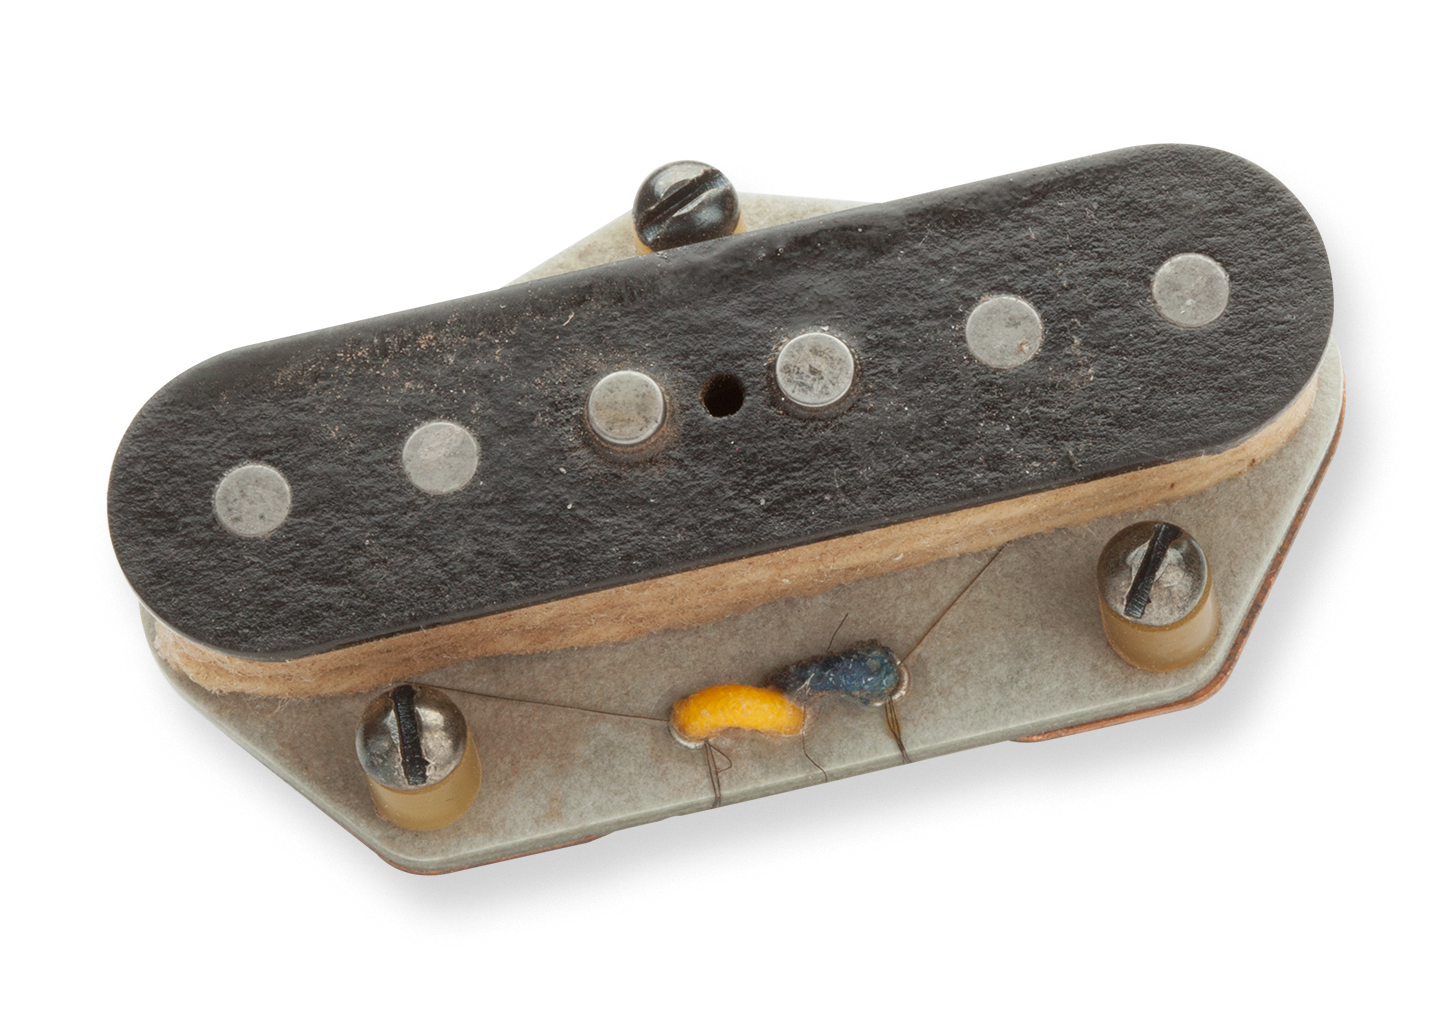 Seymour Duncan Antiquity II Tele - Bridge